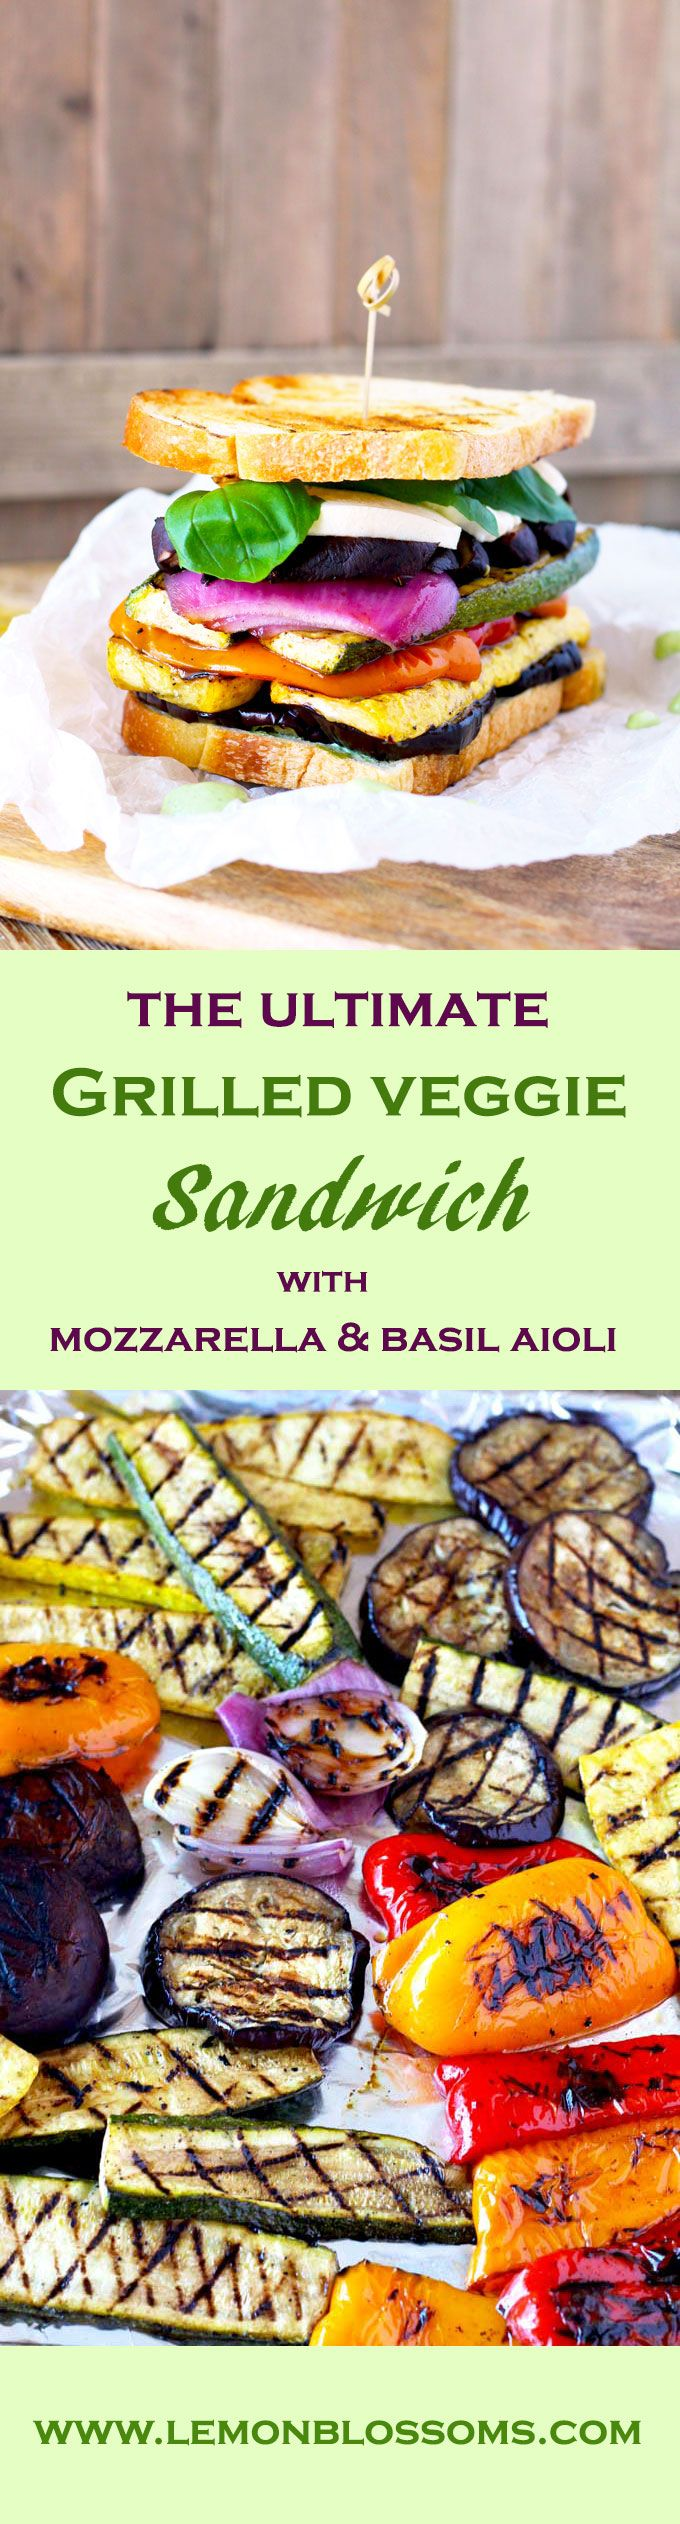 Loaded with marinated grilled vegetables, fresh mozzarella and a super flavorful and easy to make basil aioli. The Ultimate Grilled Veggie Sandwich is a great vegetarian option that is healthy, filling and delicious. Trust me even meat lovers will love th